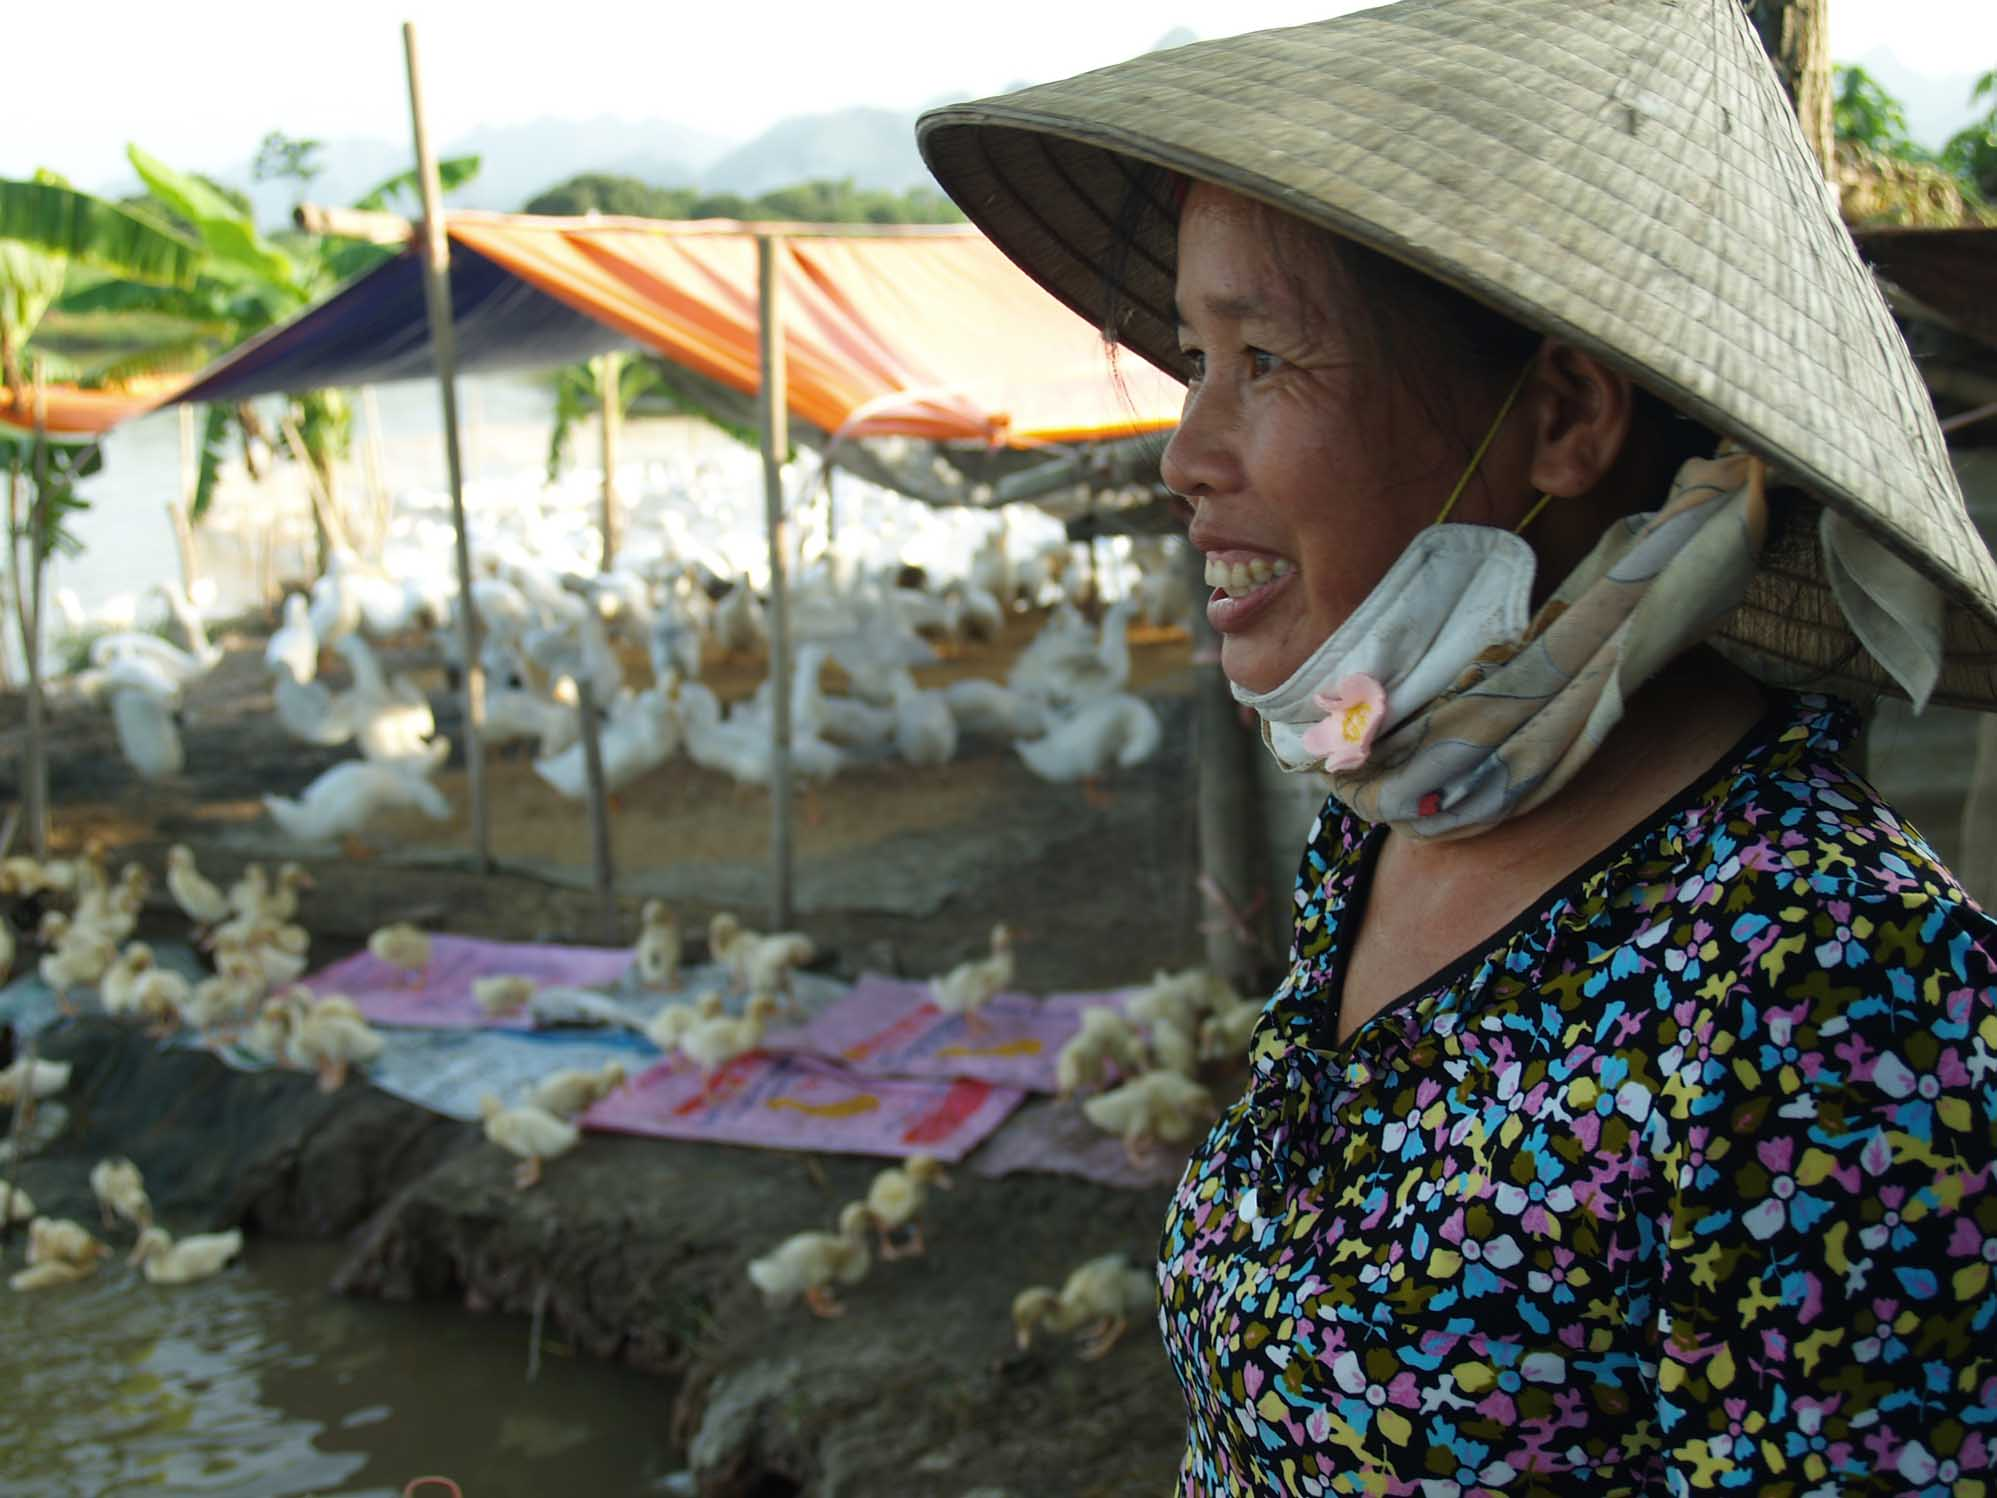 Hoang Thi Tien's at her duck farm in Que Commune, Kim Bang District, Ha Nam Province, only 100 metres from where 130 of her neighbour's ducks had to be culled because of avian influenza.